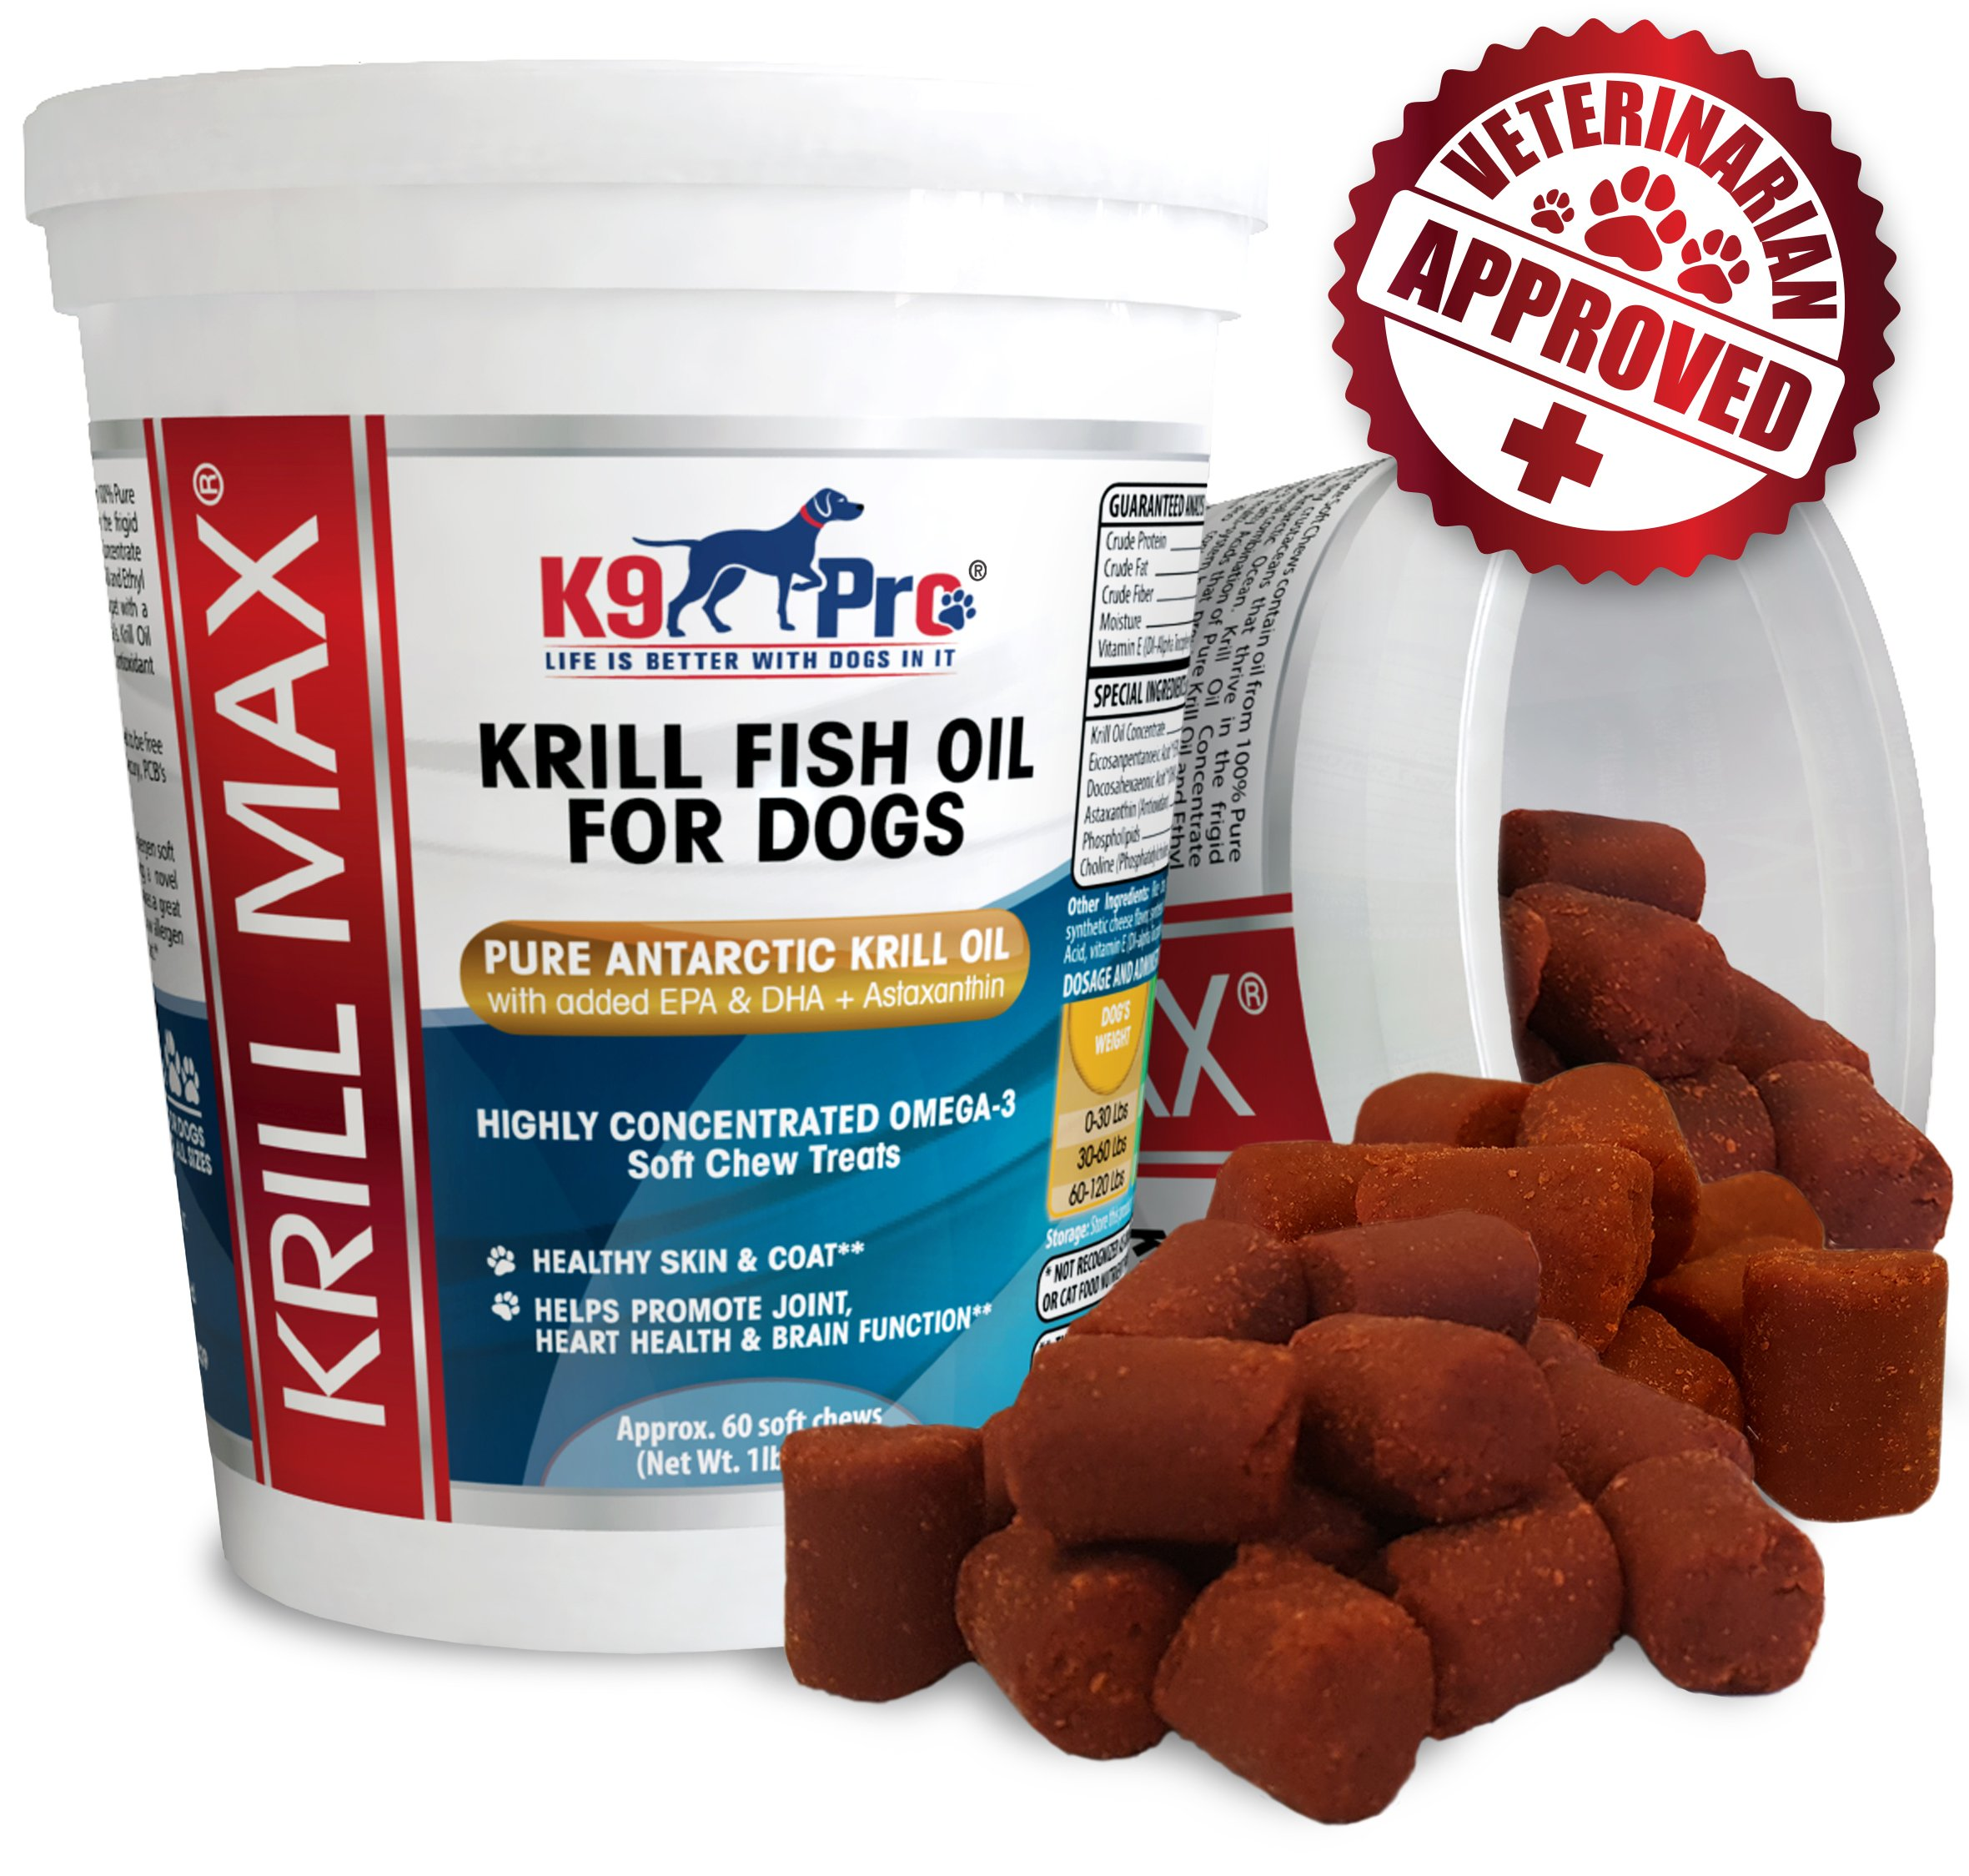 Krill MAX Fish Oil for Dogs - Soft Moist Tasty Chews 350mg Omega 3 Best Dog Joint Supplement with DHA EPA (Full 2 Month Supply) Plus Astaxanthin and Vitamin E - for Hip Joints Skin and Coat by K9 Pro